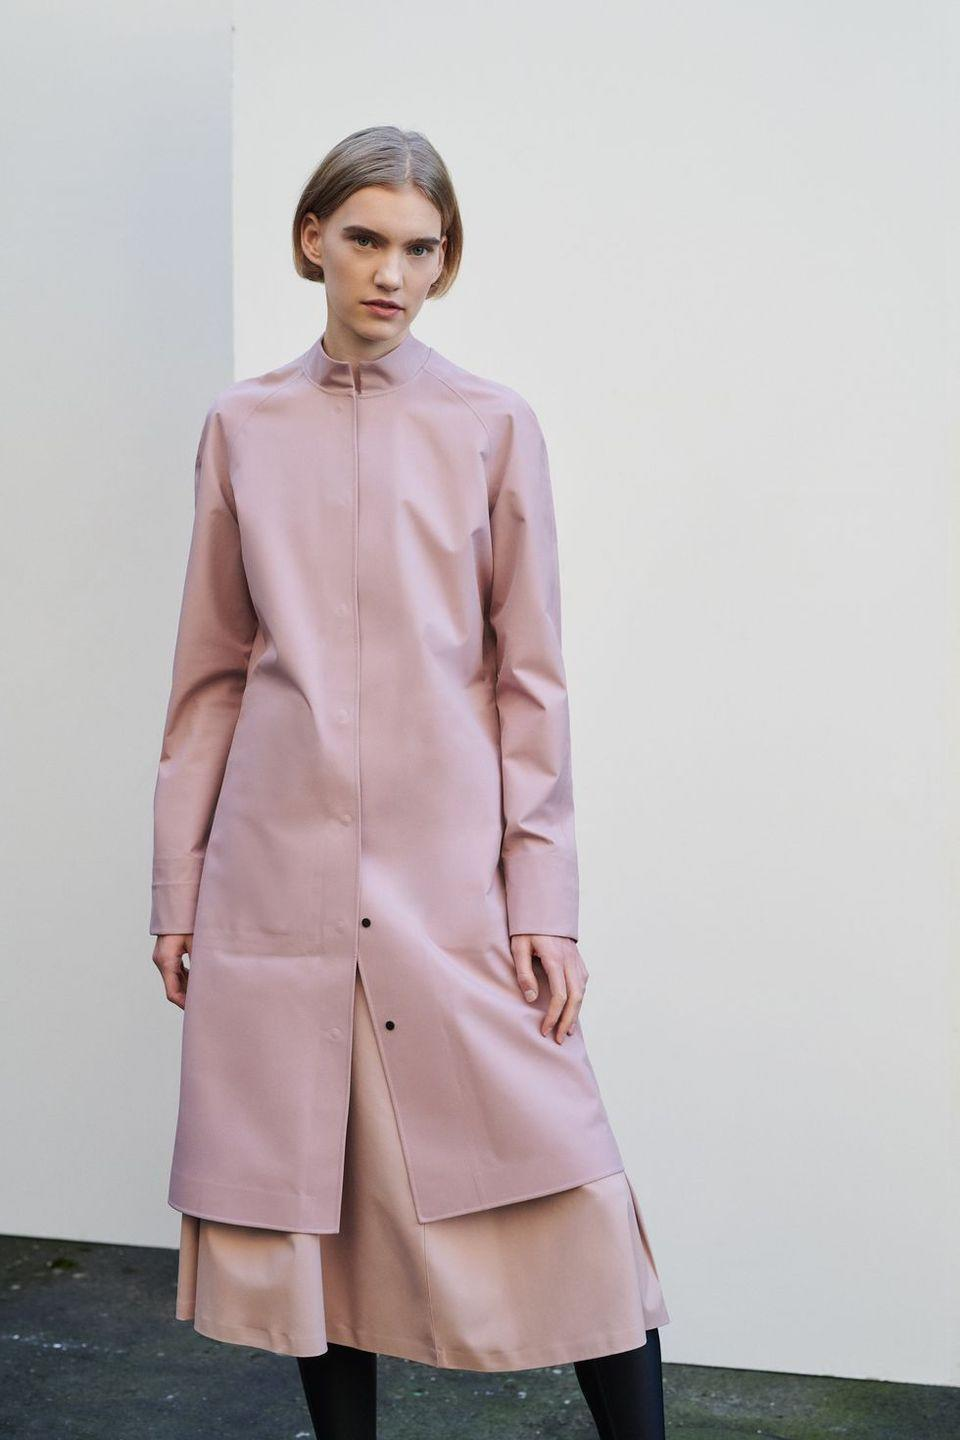 """<p>This German-based brand's newest collection is made up of 96 per cent recycled, natural, biodegradable or bio-based textiles.</p><p><a class=""""link rapid-noclick-resp"""" href=""""https://us-aeance-com.myshopify.com/collections/women-02"""" rel=""""nofollow noopener"""" target=""""_blank"""" data-ylk=""""slk:SHOP AEANCE NOW"""">SHOP AEANCE NOW</a></p>"""